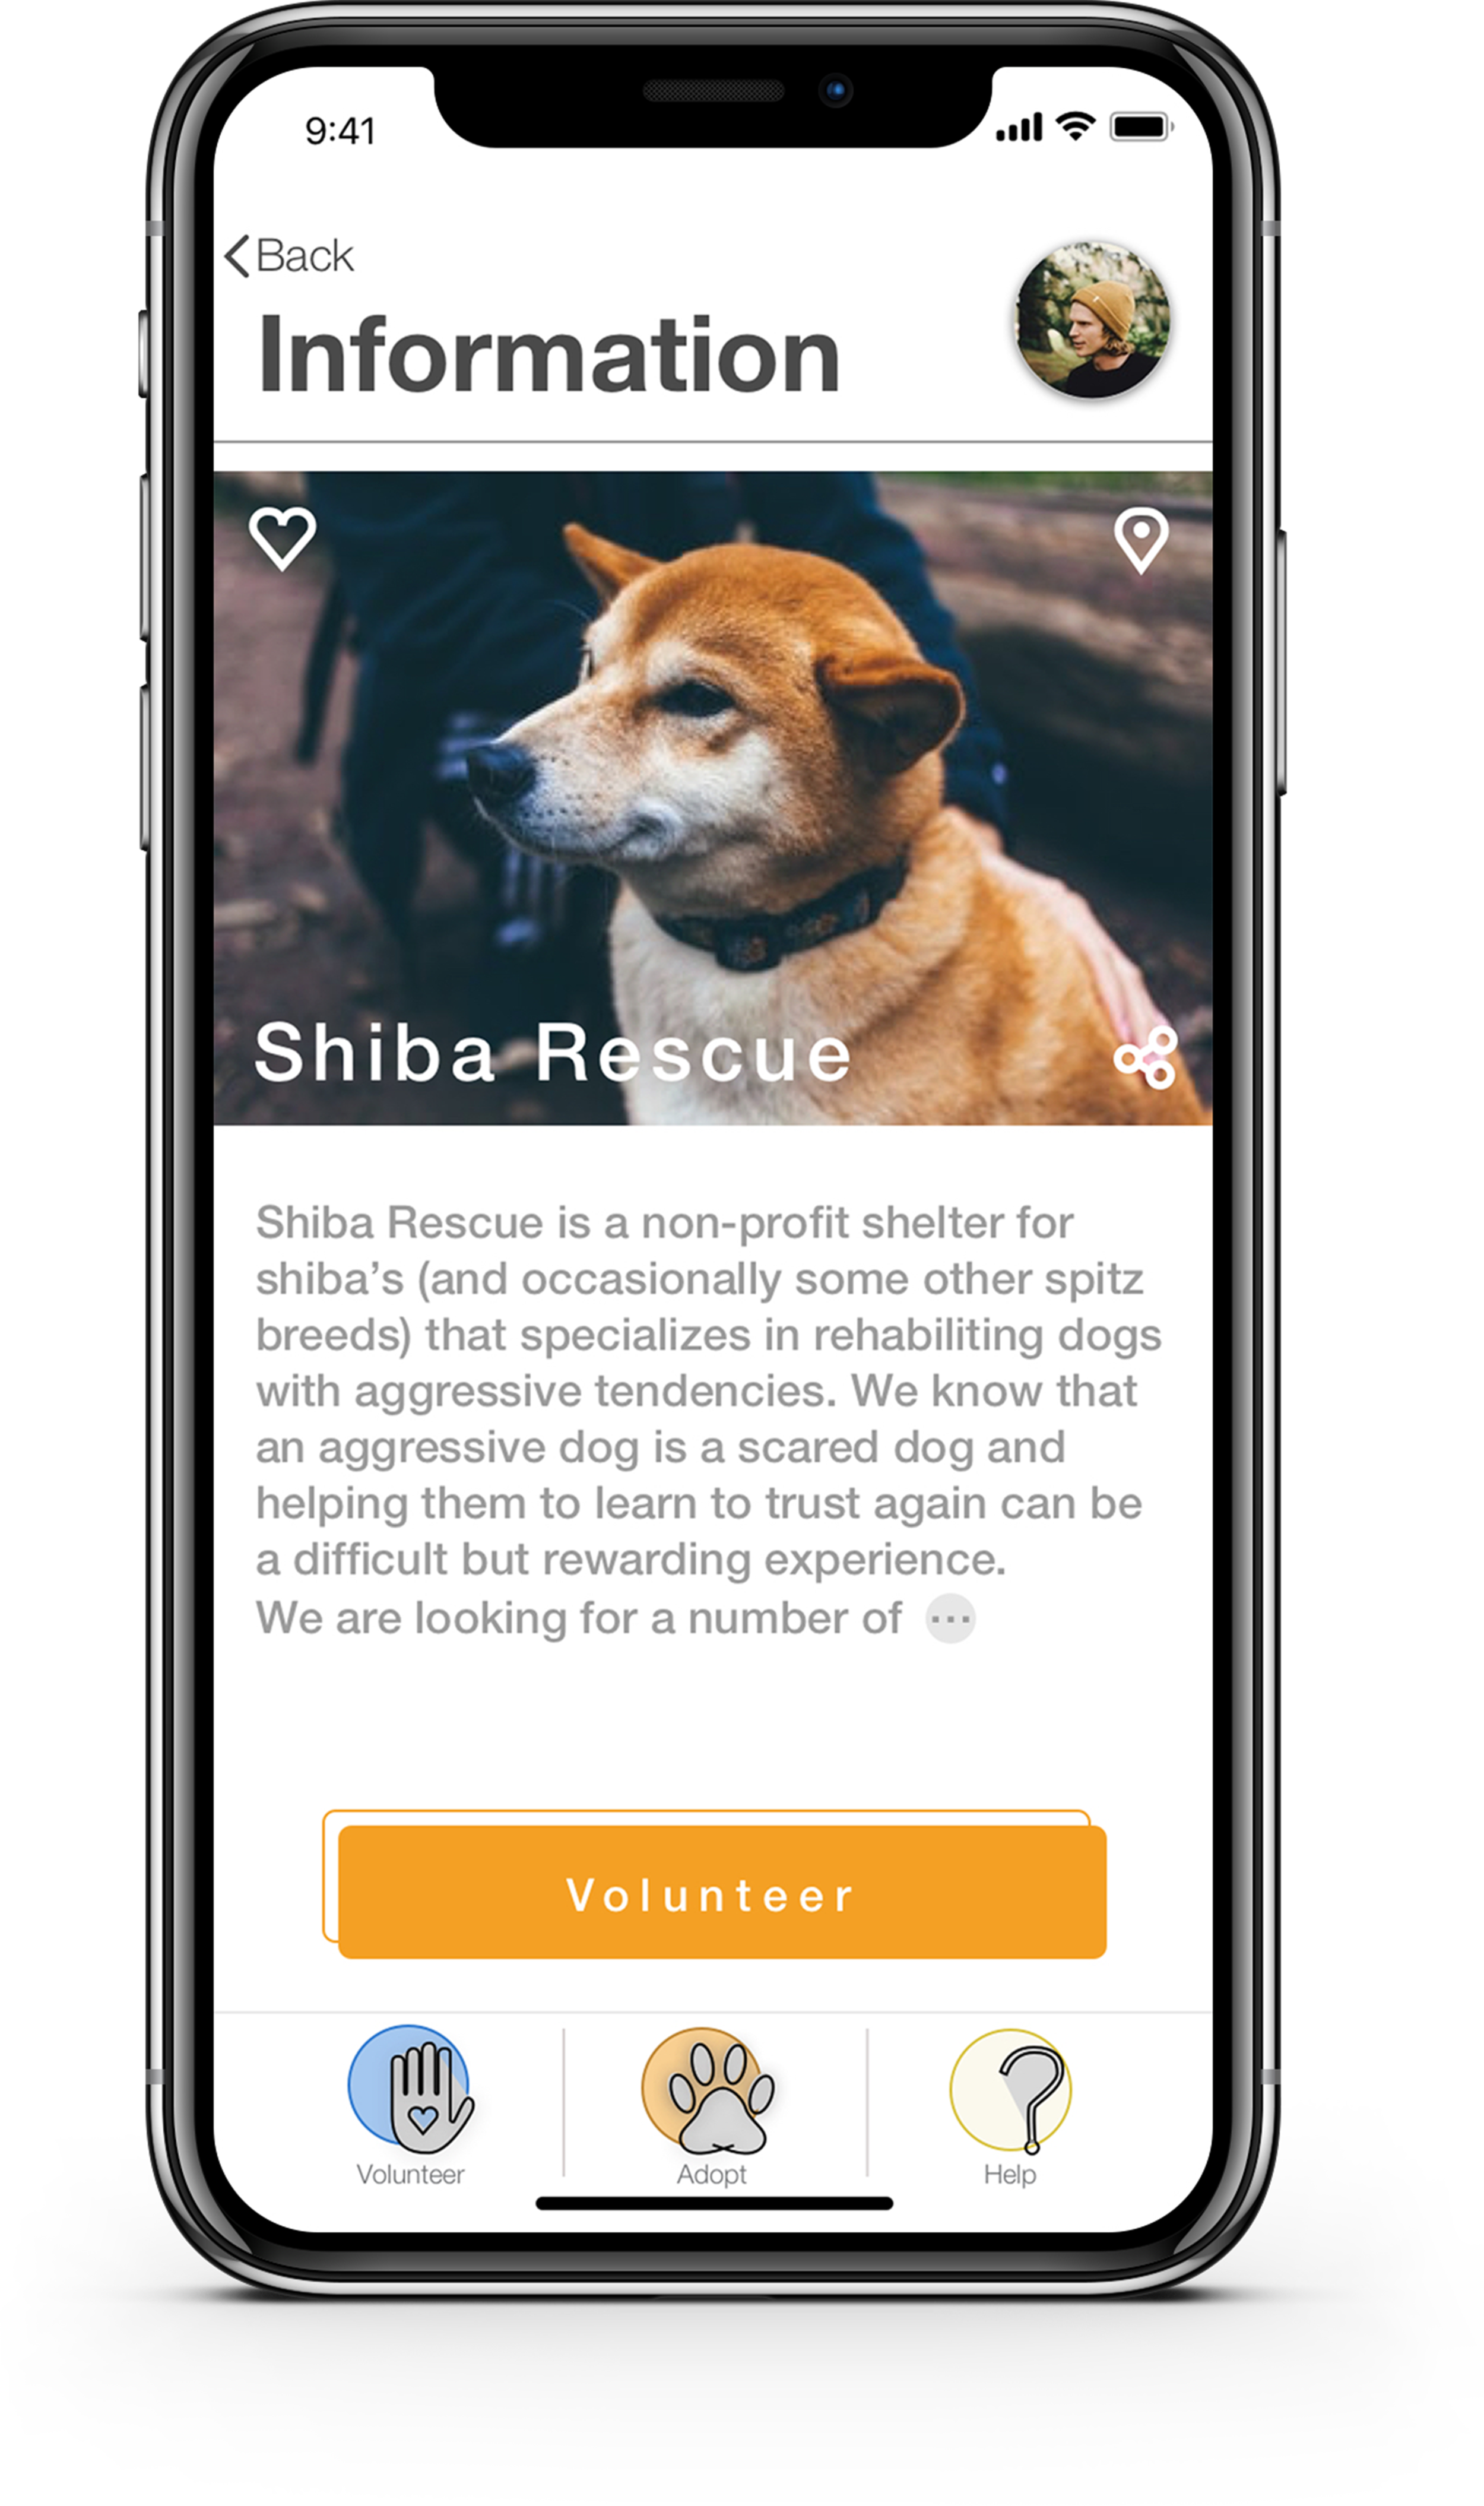 A  page describing the shelter's cause is very important for the user.  You don't want to end up at a shelter specializing in aggressive dogs if you don't feel prepared for that, and you don't want to end up at a shelter of puppies if … wait, of course you want to end up at a shelter of puppies.